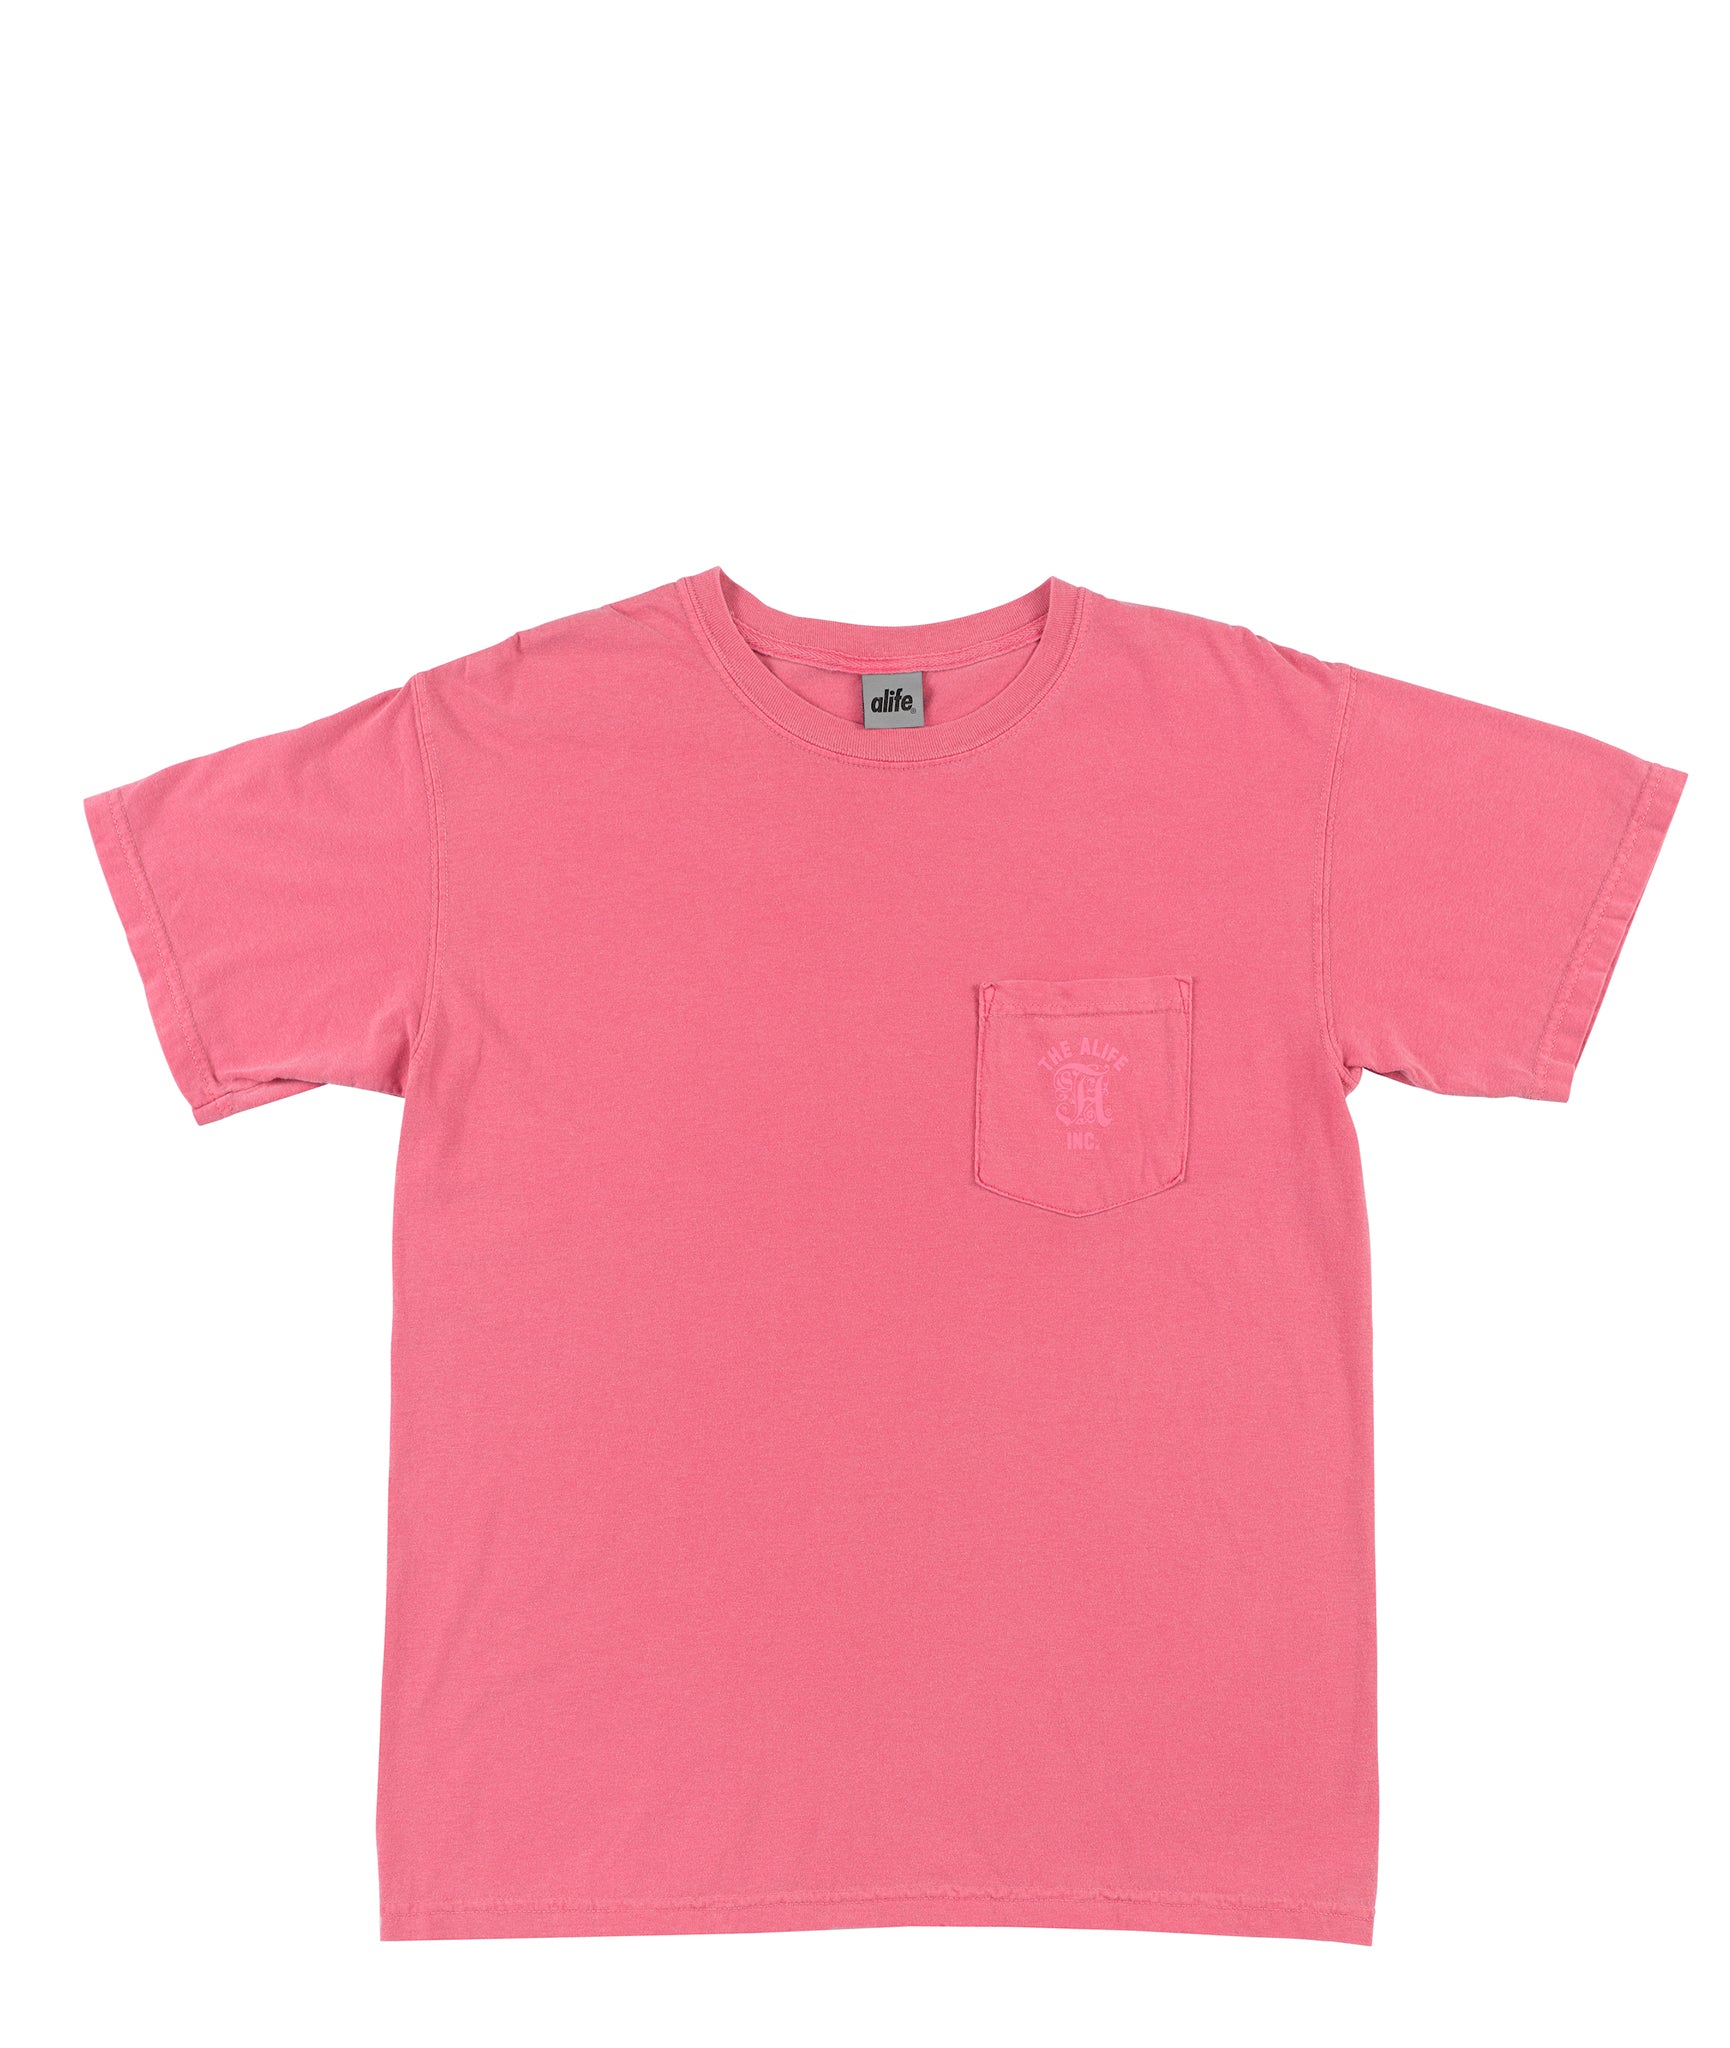 Alife Antique A Pocket Tee